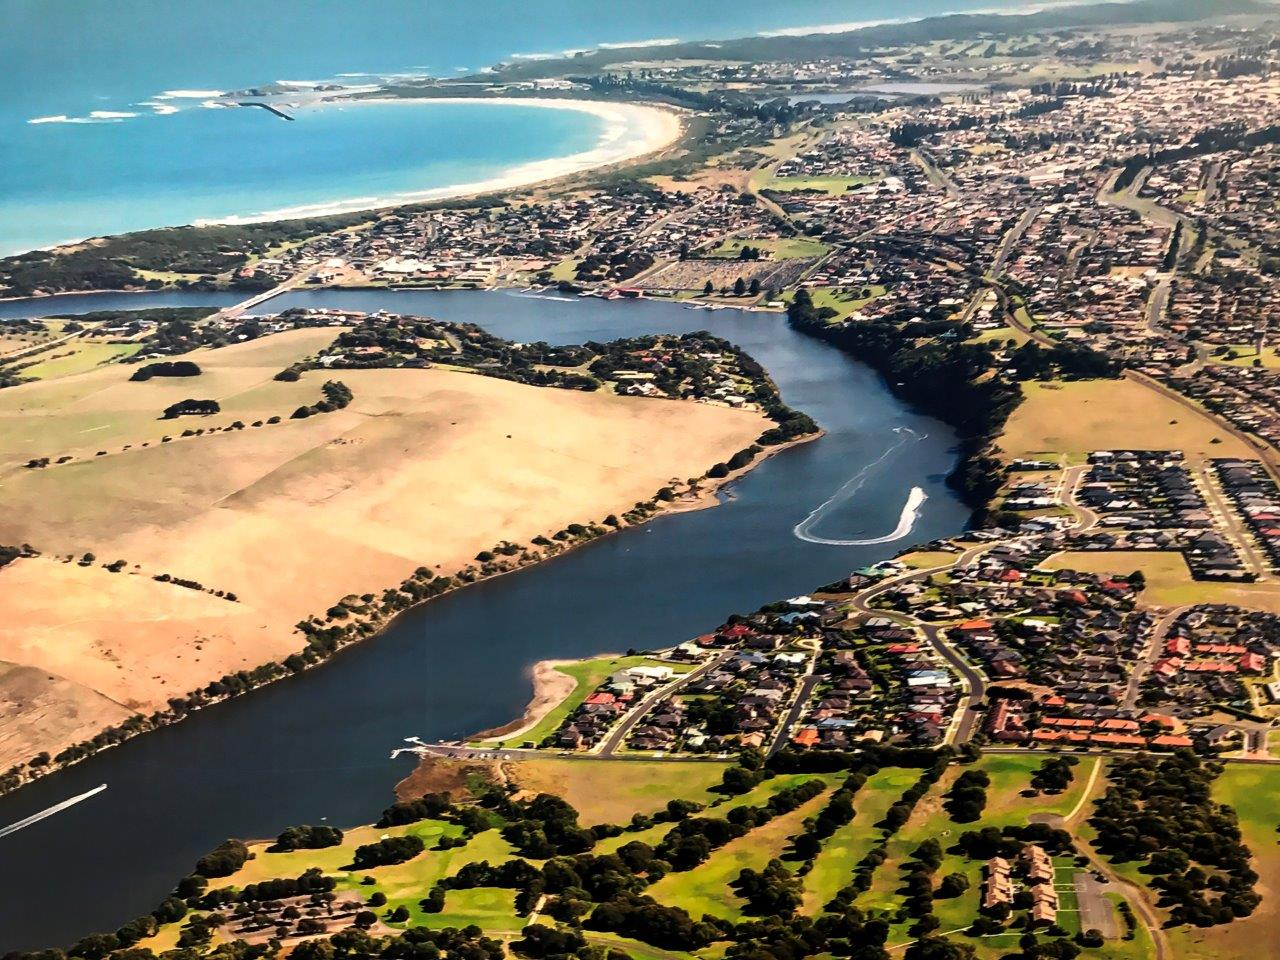 Warrnambool offers not only the best Sprintcar Race in Australia, but awesome scenery and activities as well